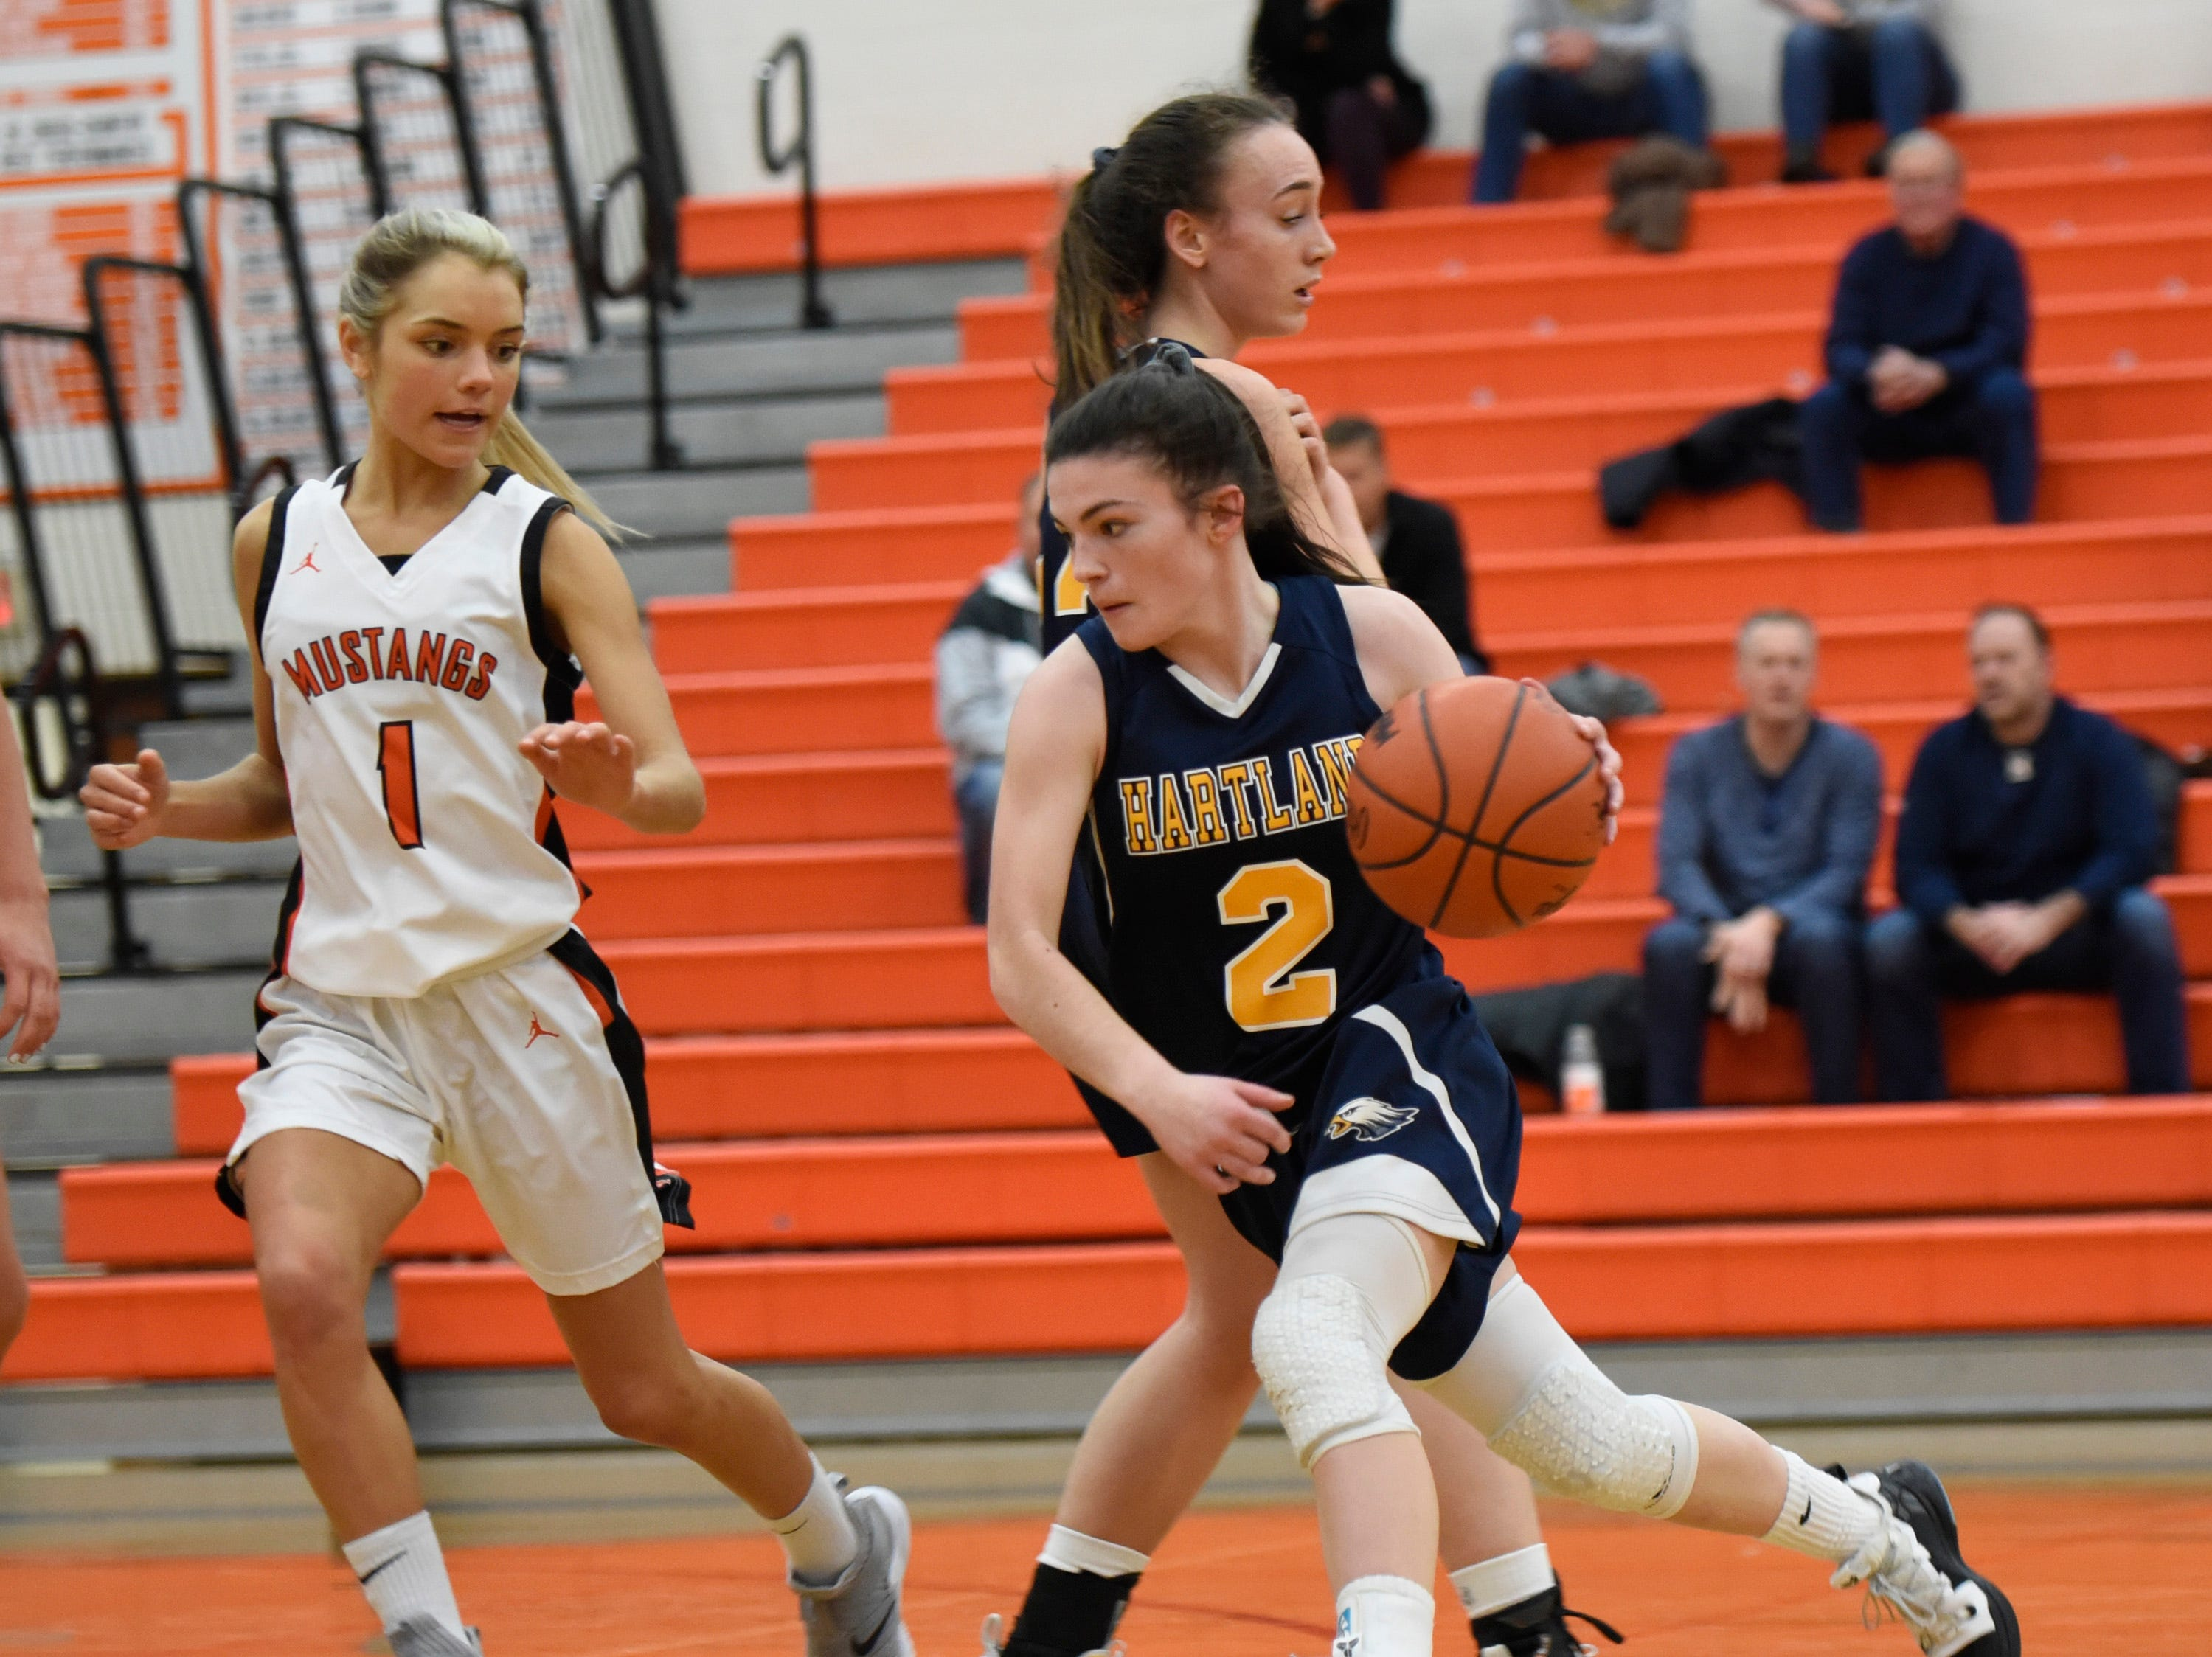 Hartland's Syd Caddell (2) and Northville's Jenna Lauderback (1) during a KLAA match up between the Mustangs and Eagles at Northville Jan. 8, 2019